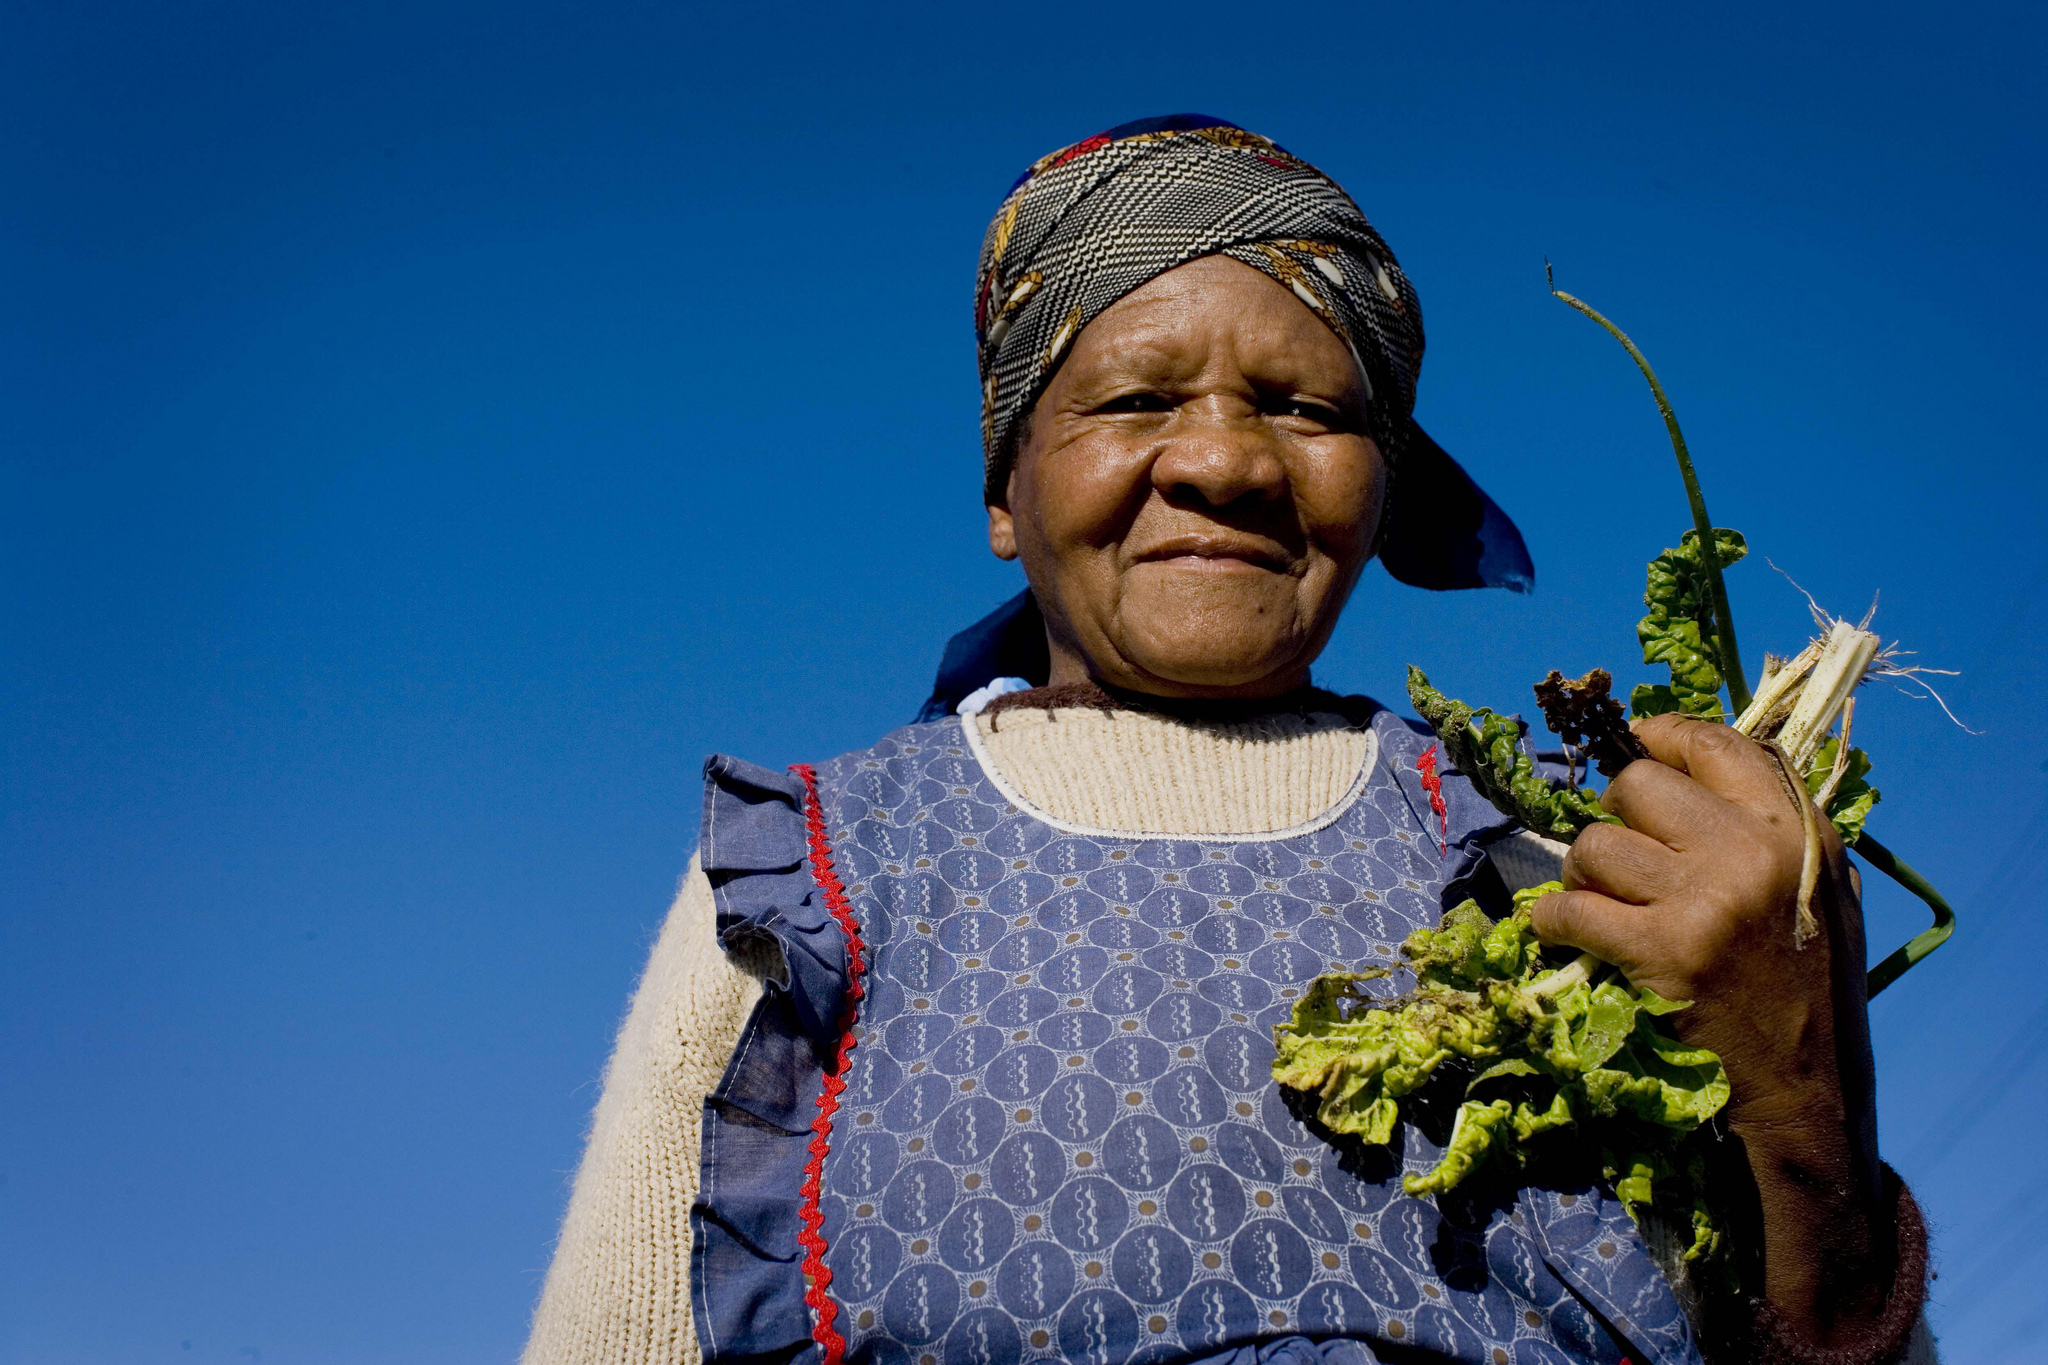 A woman holds up some of the vegetables she has grown in a garden in Cape Town, South Africa. © Kate Holt/Africa Practice